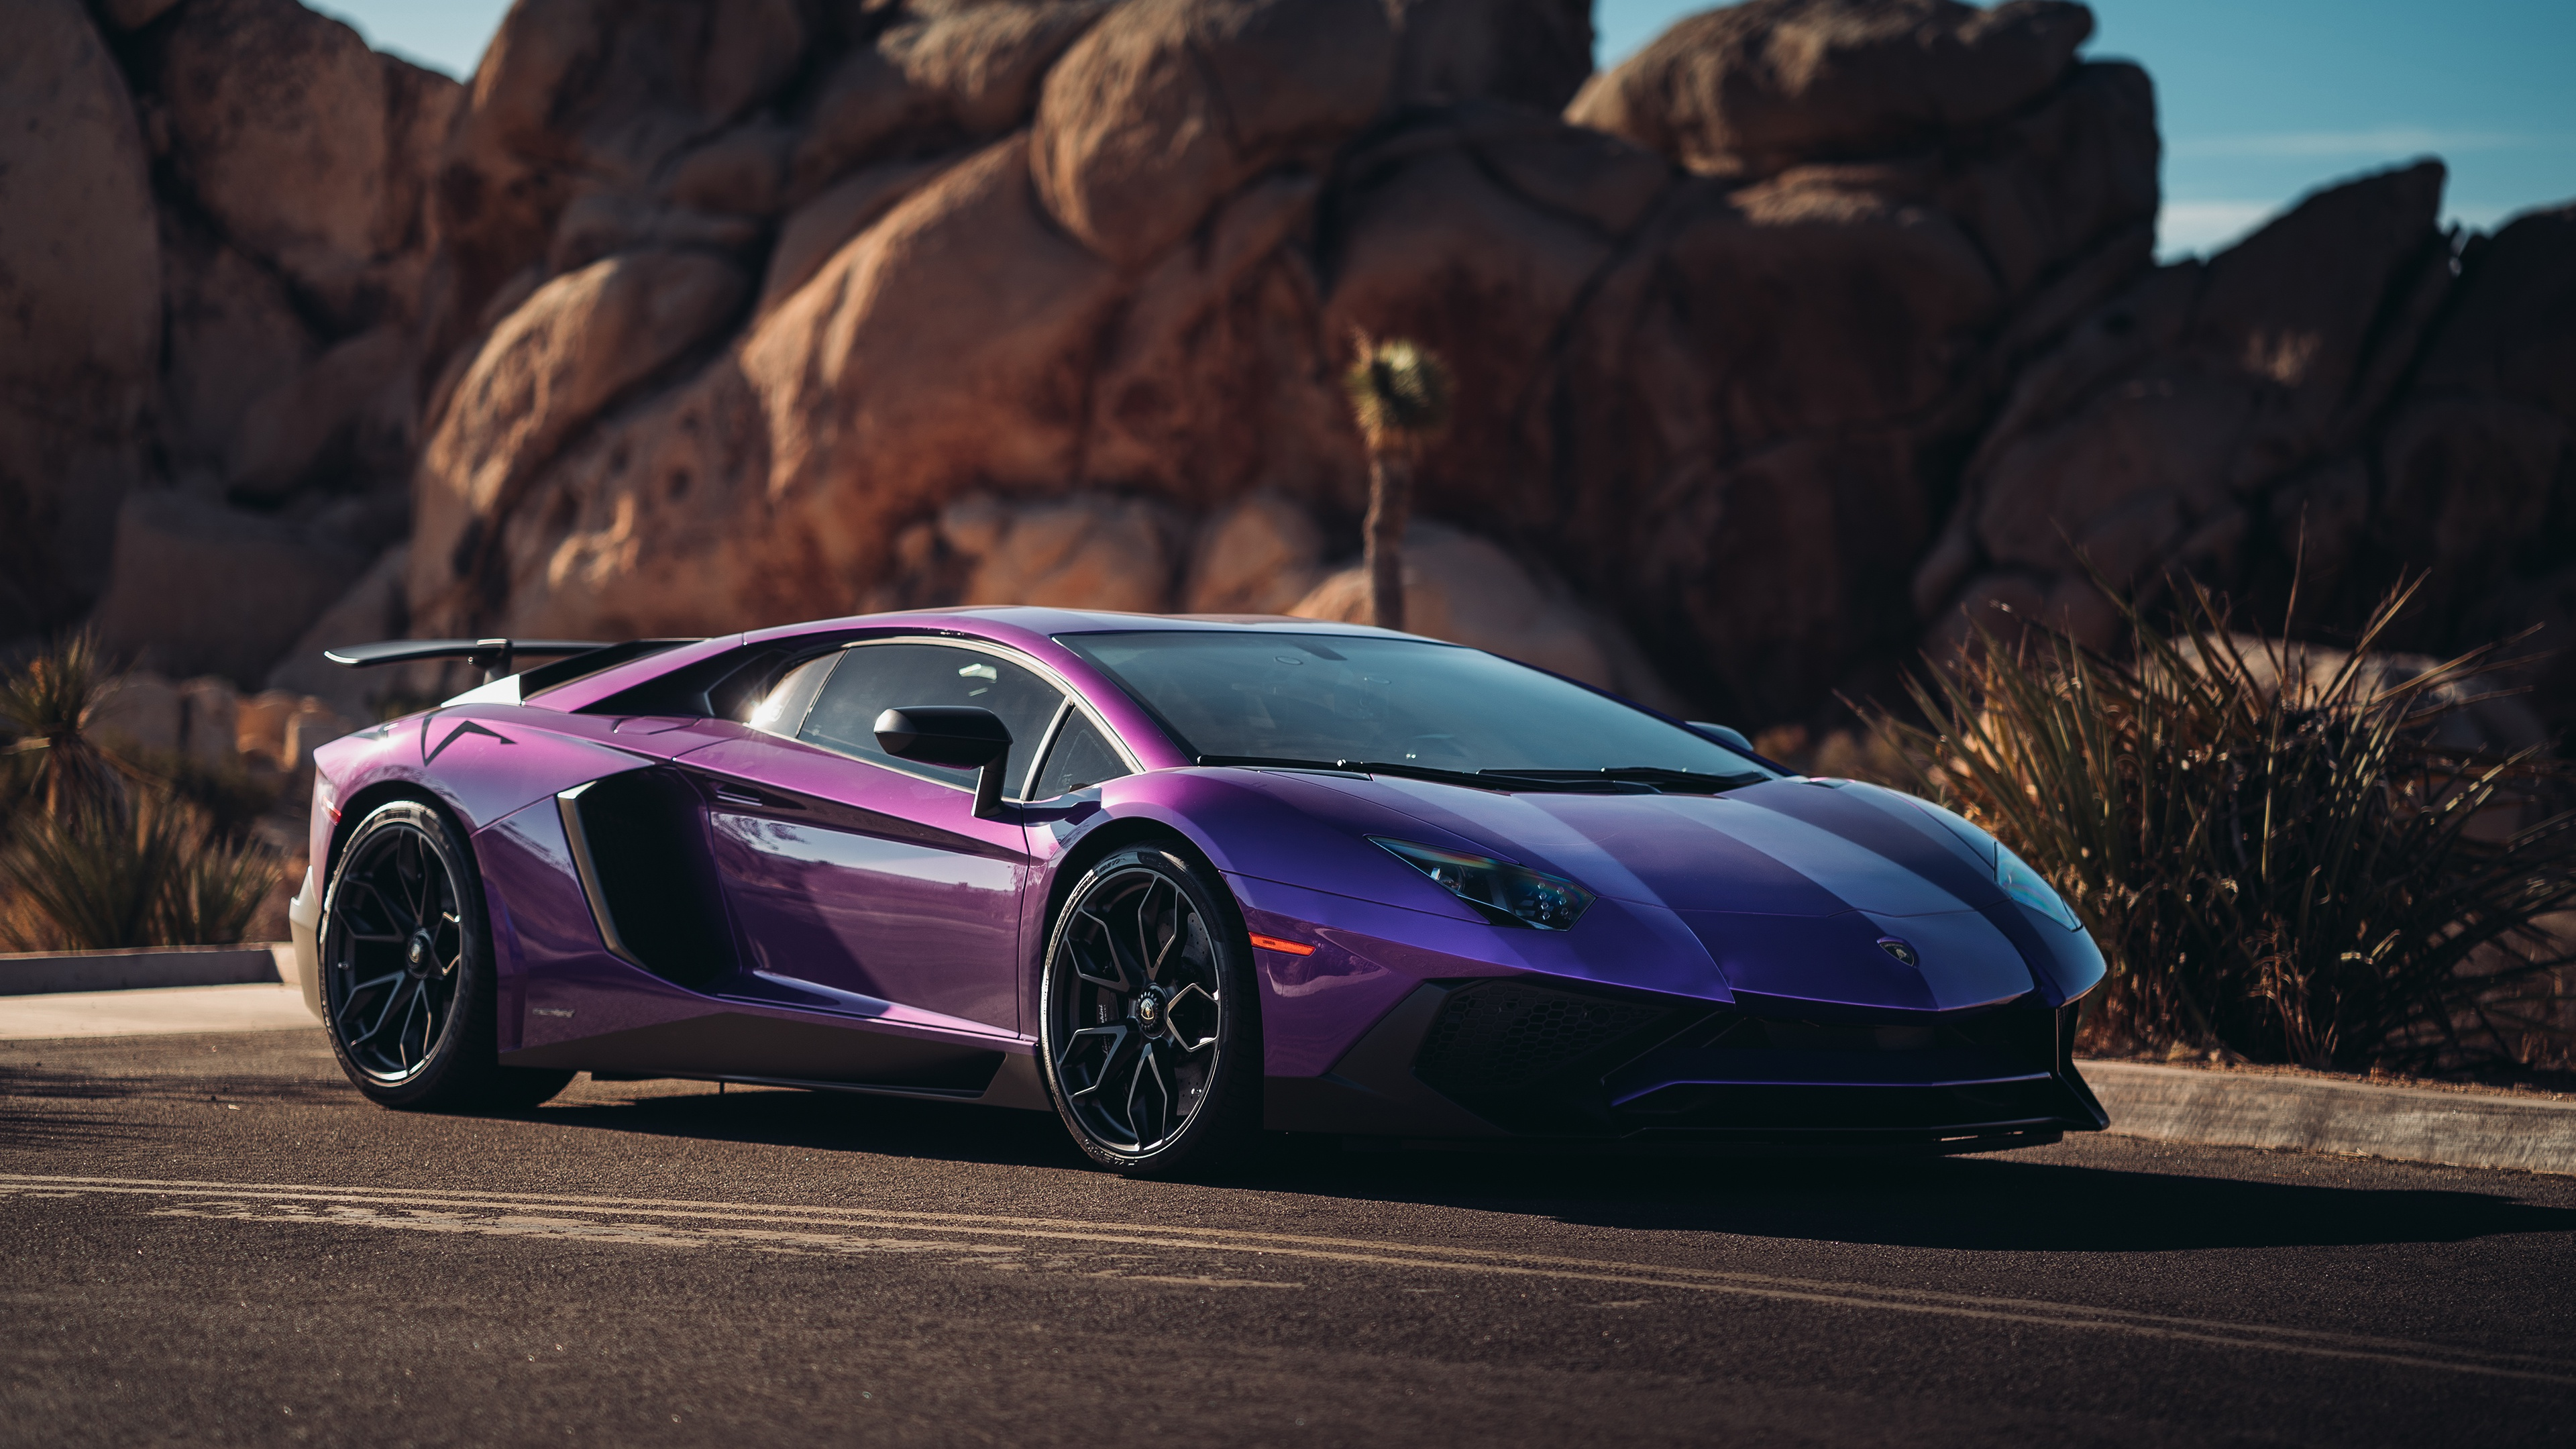 Lamborghini Aventador 4k Ultra Hd Wallpaper Background Image